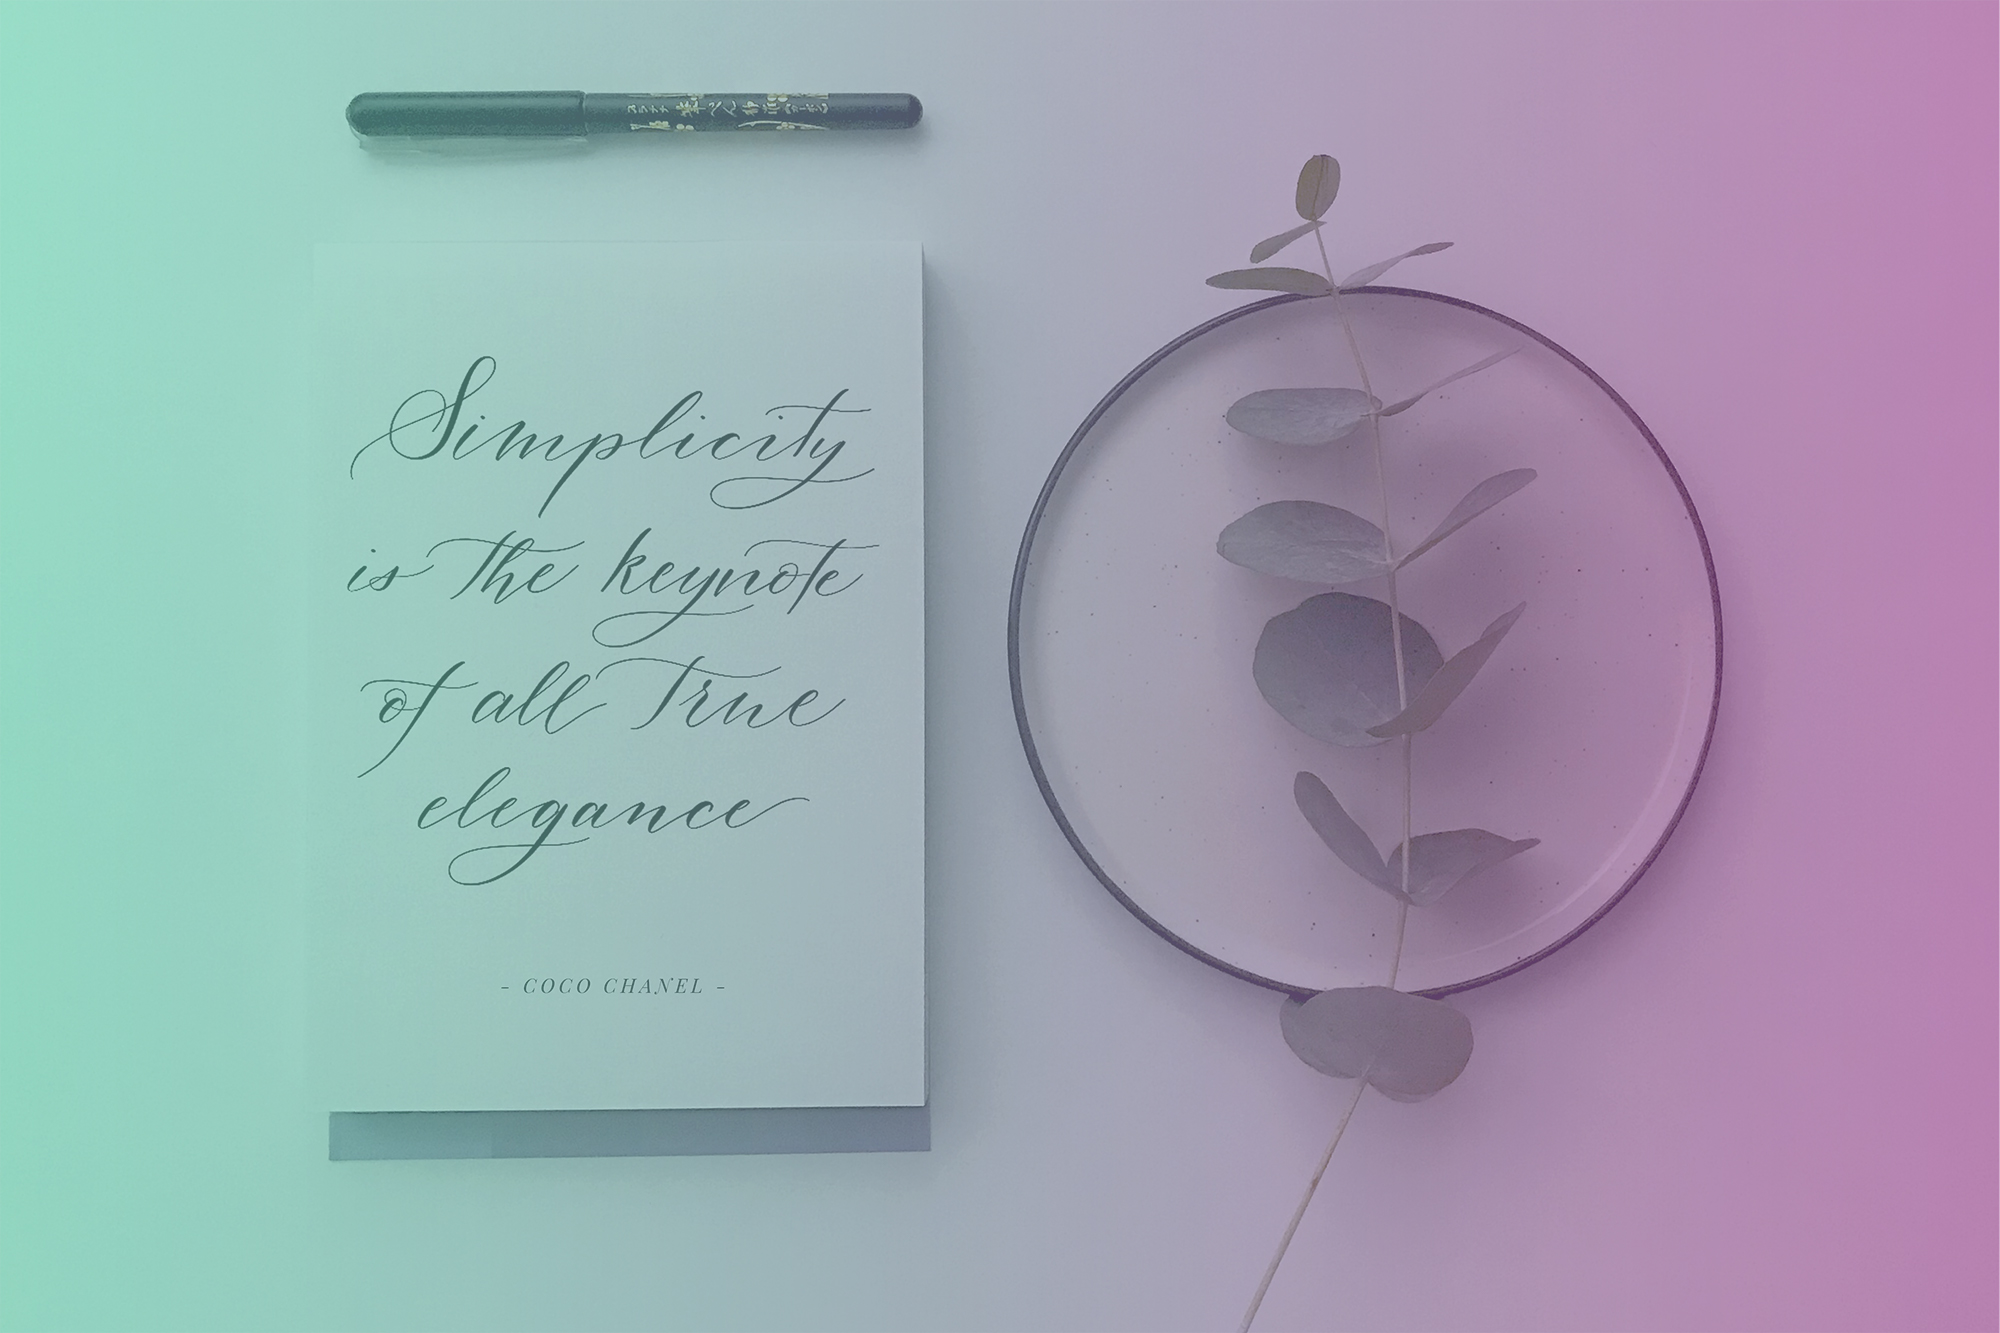 Best Calligraphy Influencers on Instagram